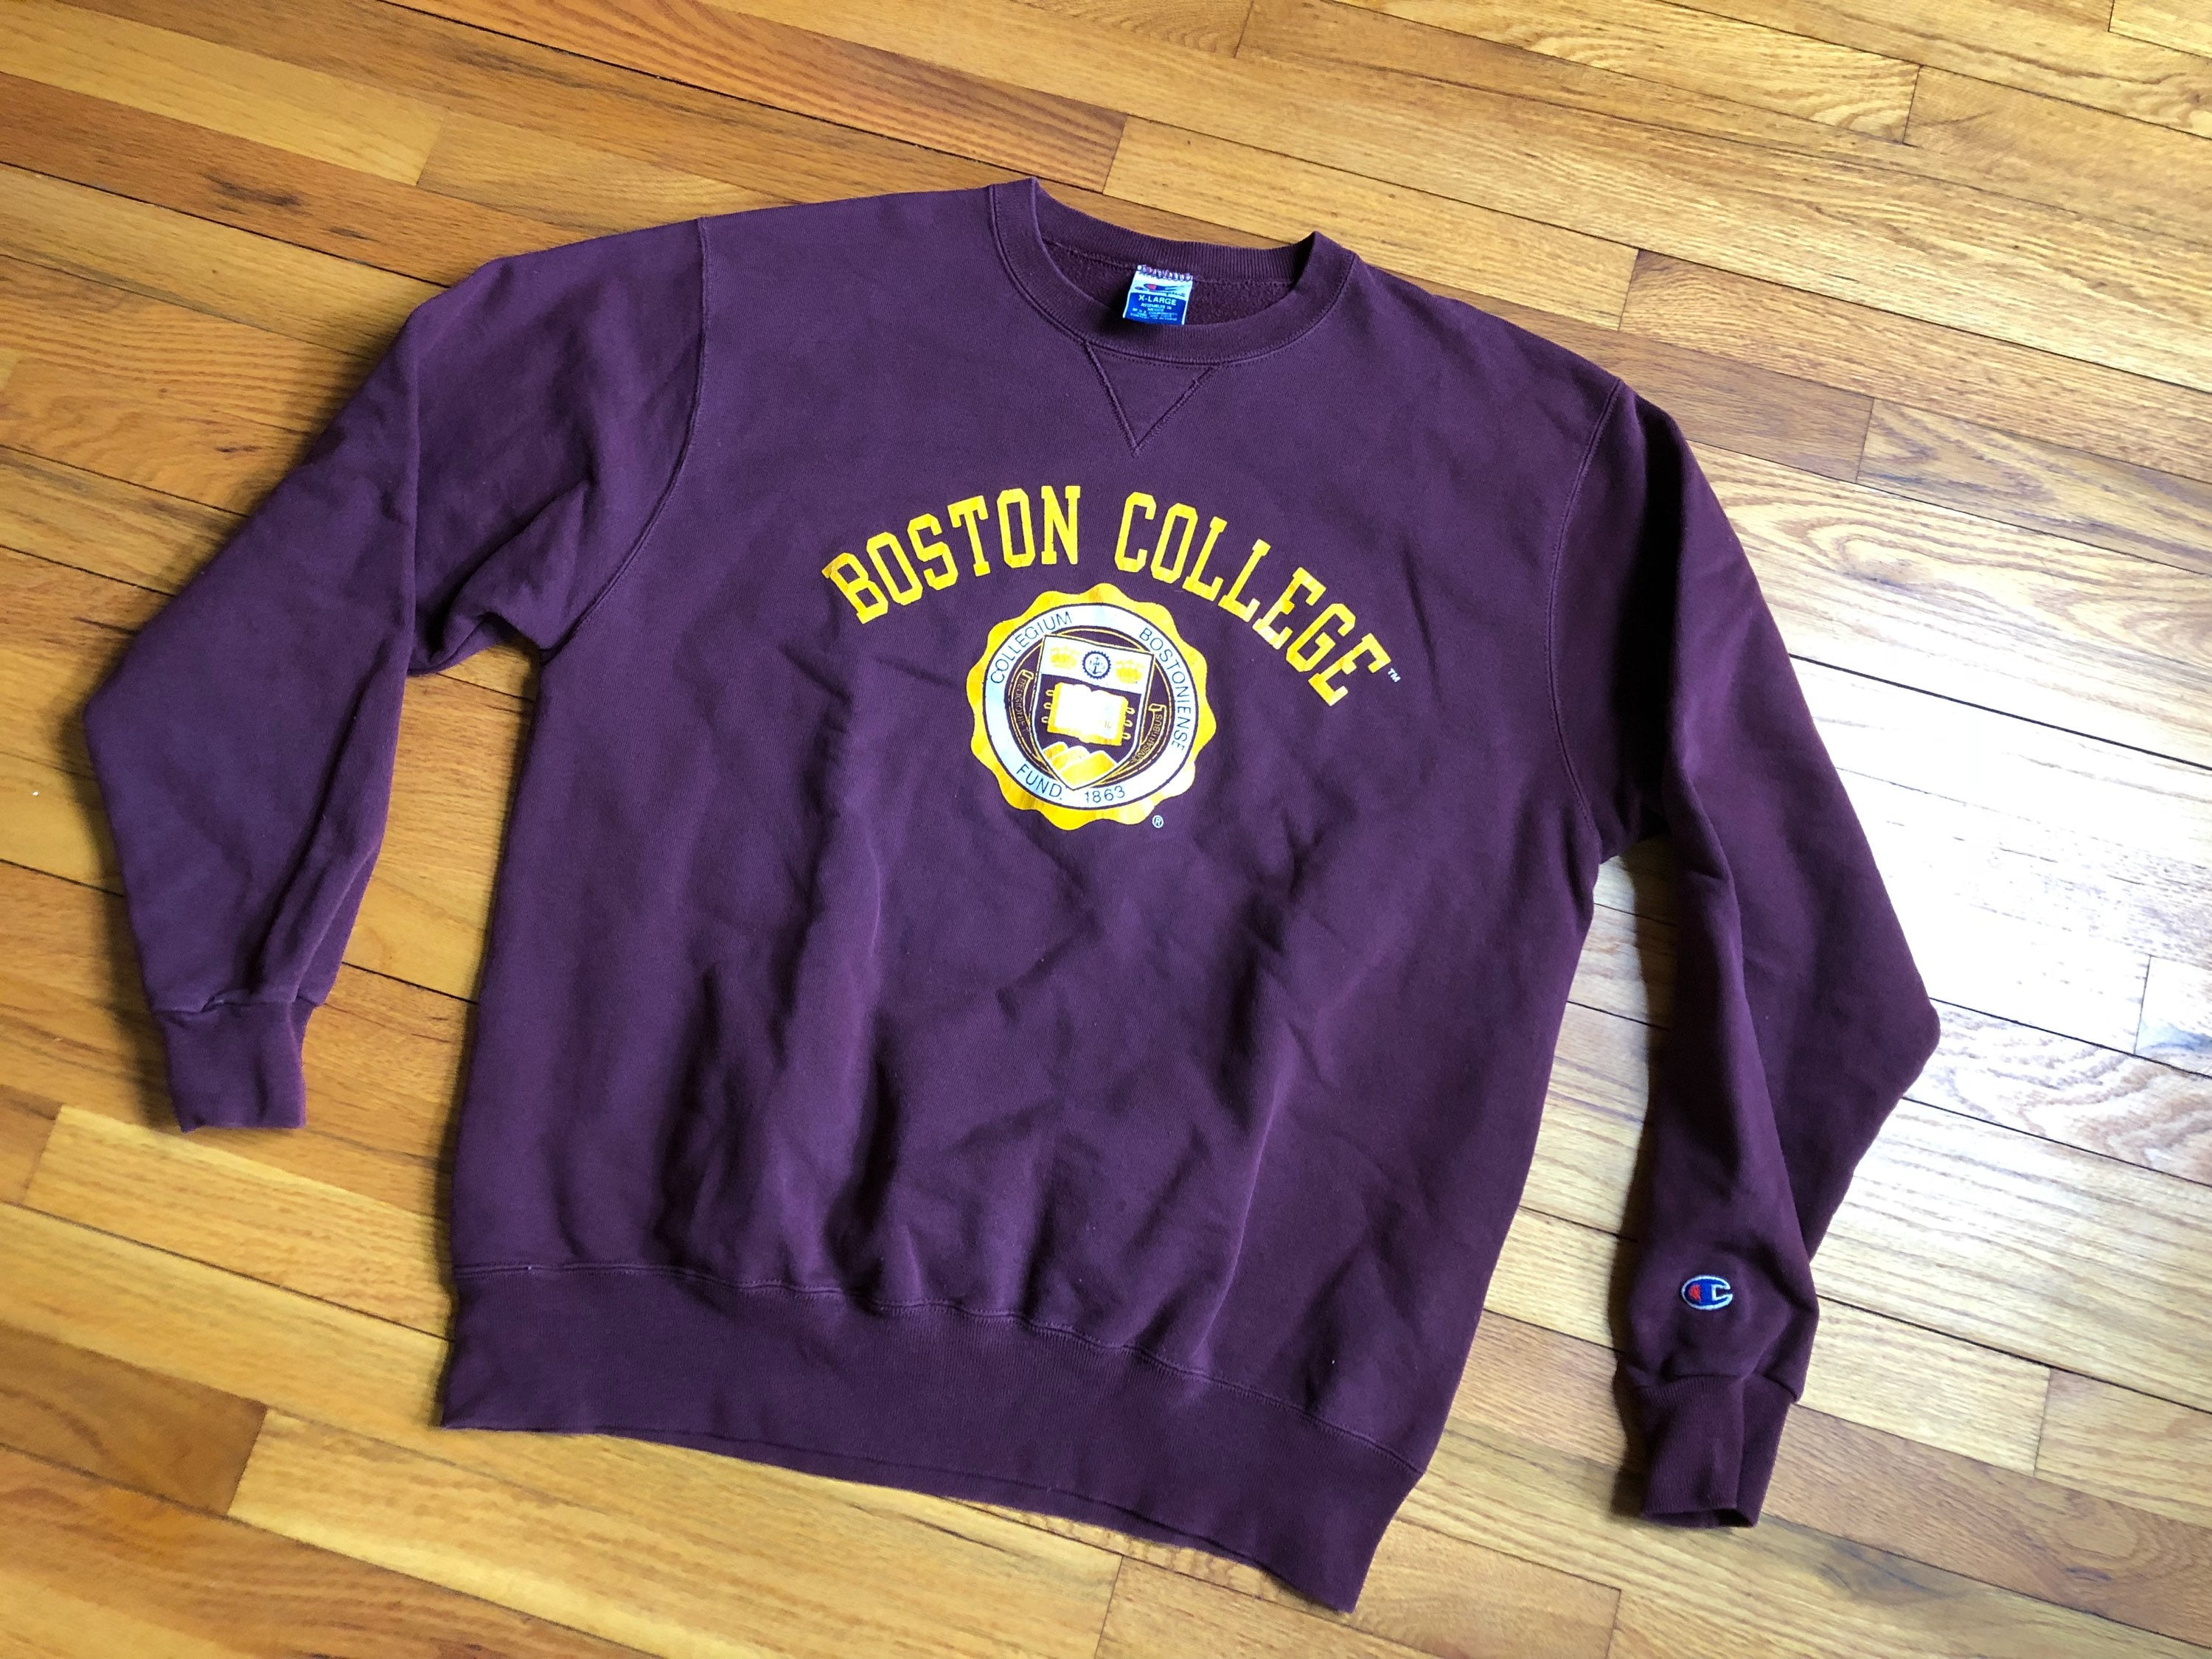 c2ffc1985 Champion Boston College Sweatshirt - Nils Stucki Kieferorthopäde